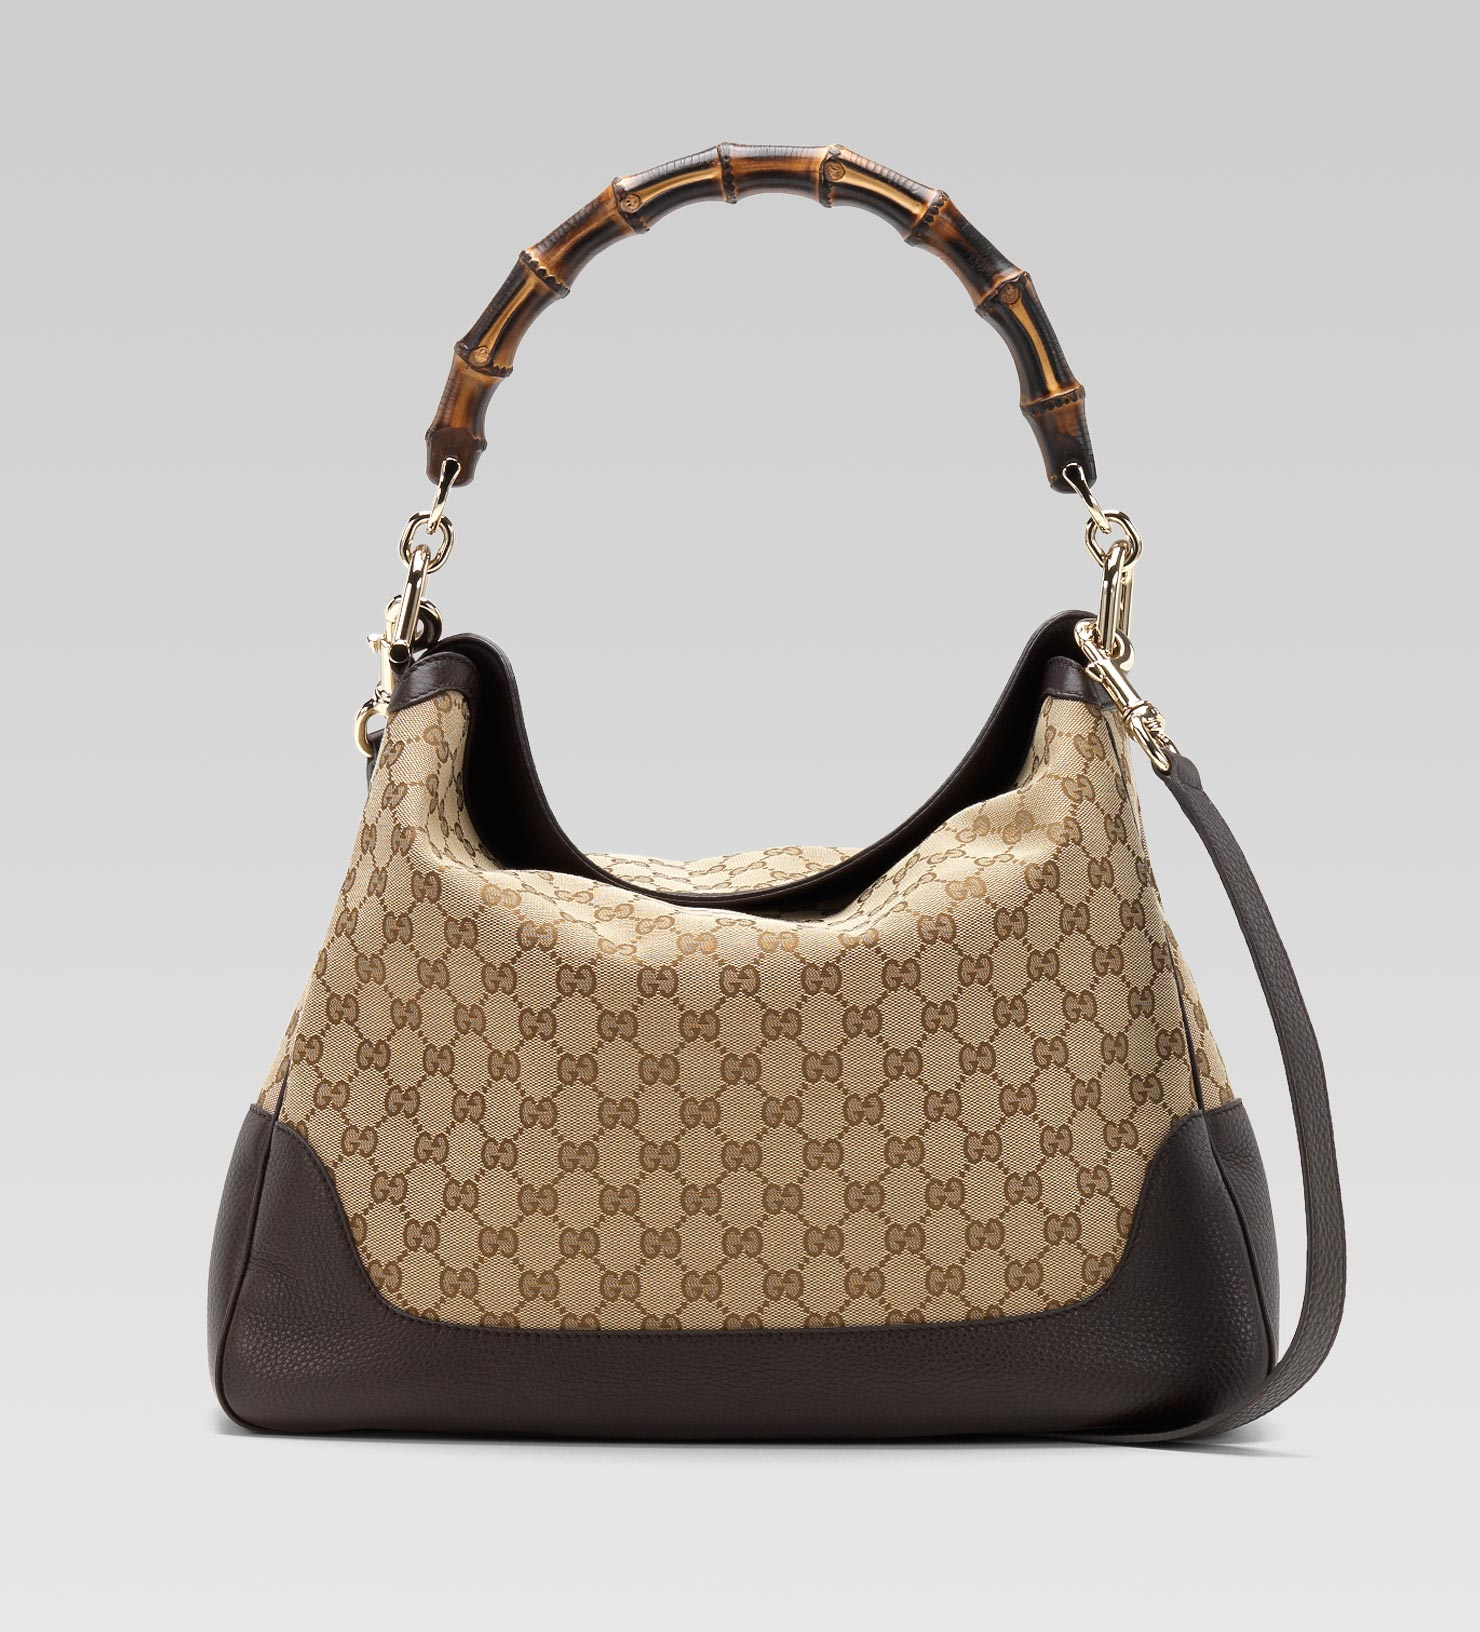 97a1ecbc060c Gucci Bag With Bamboo Handles   Stanford Center for Opportunity ...